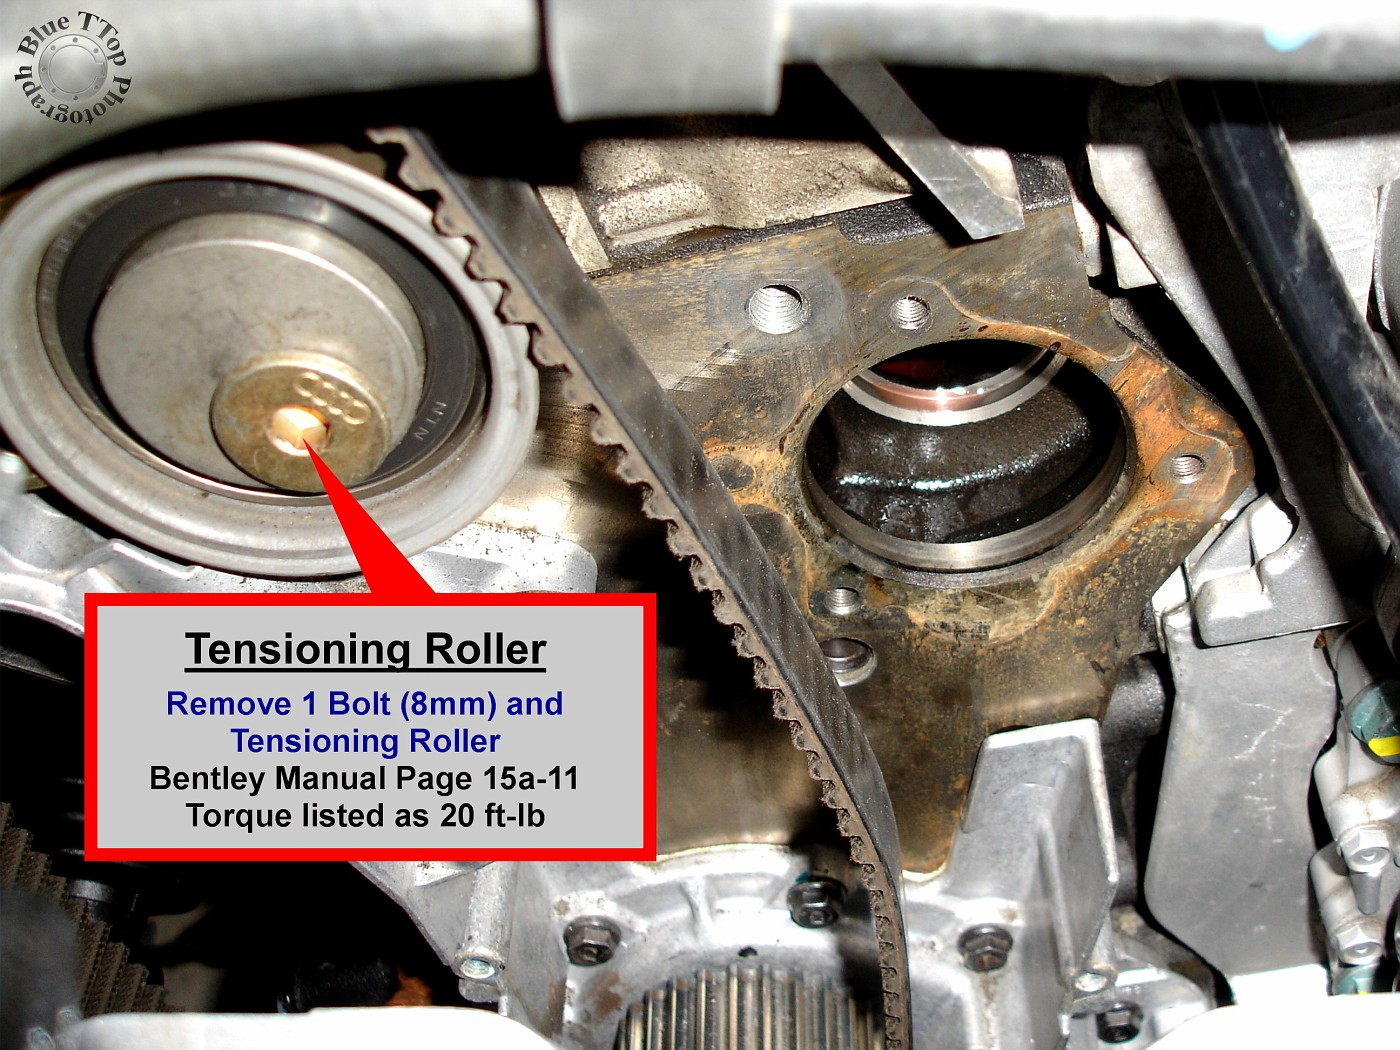 Remove Tensioning Roller